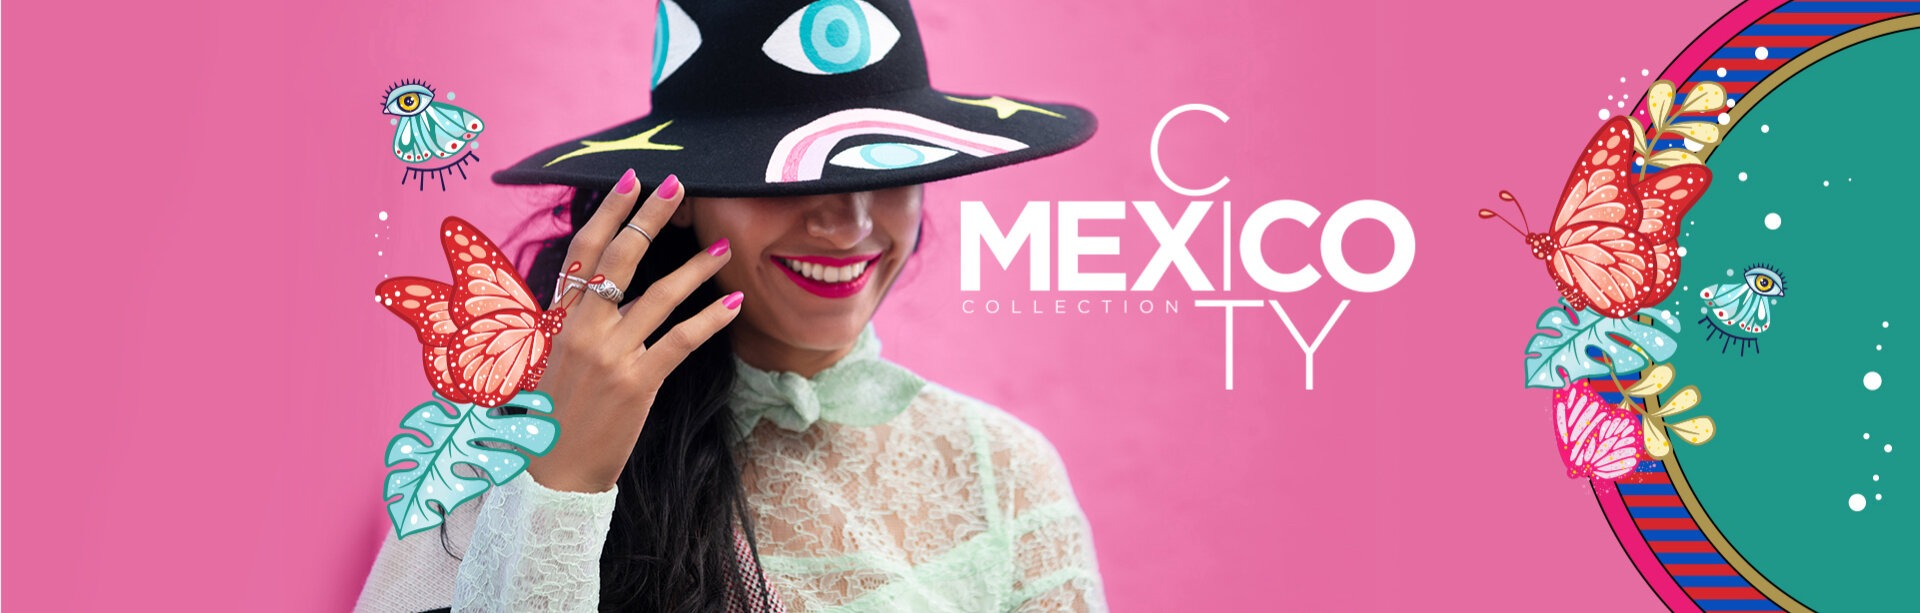 Shop the OPI Mexico City Collection